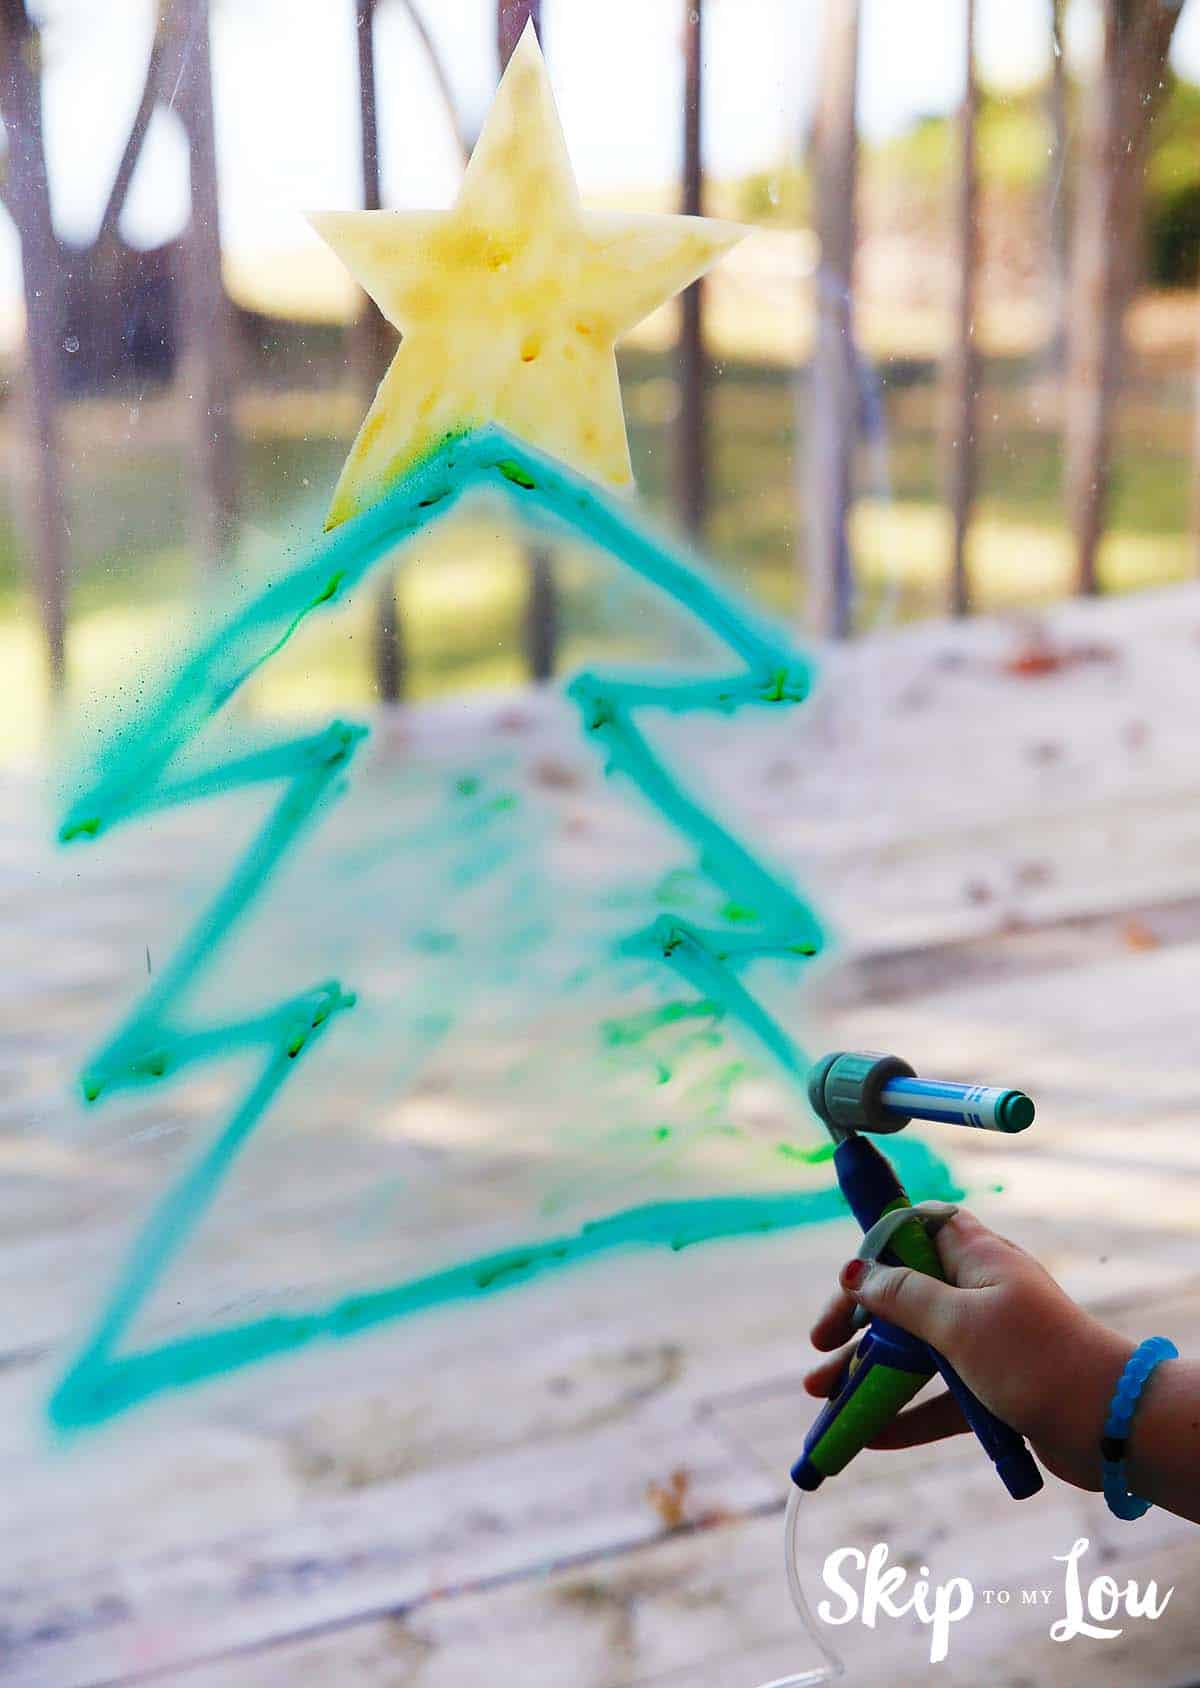 crayola-air-maker-spray-window-decorations